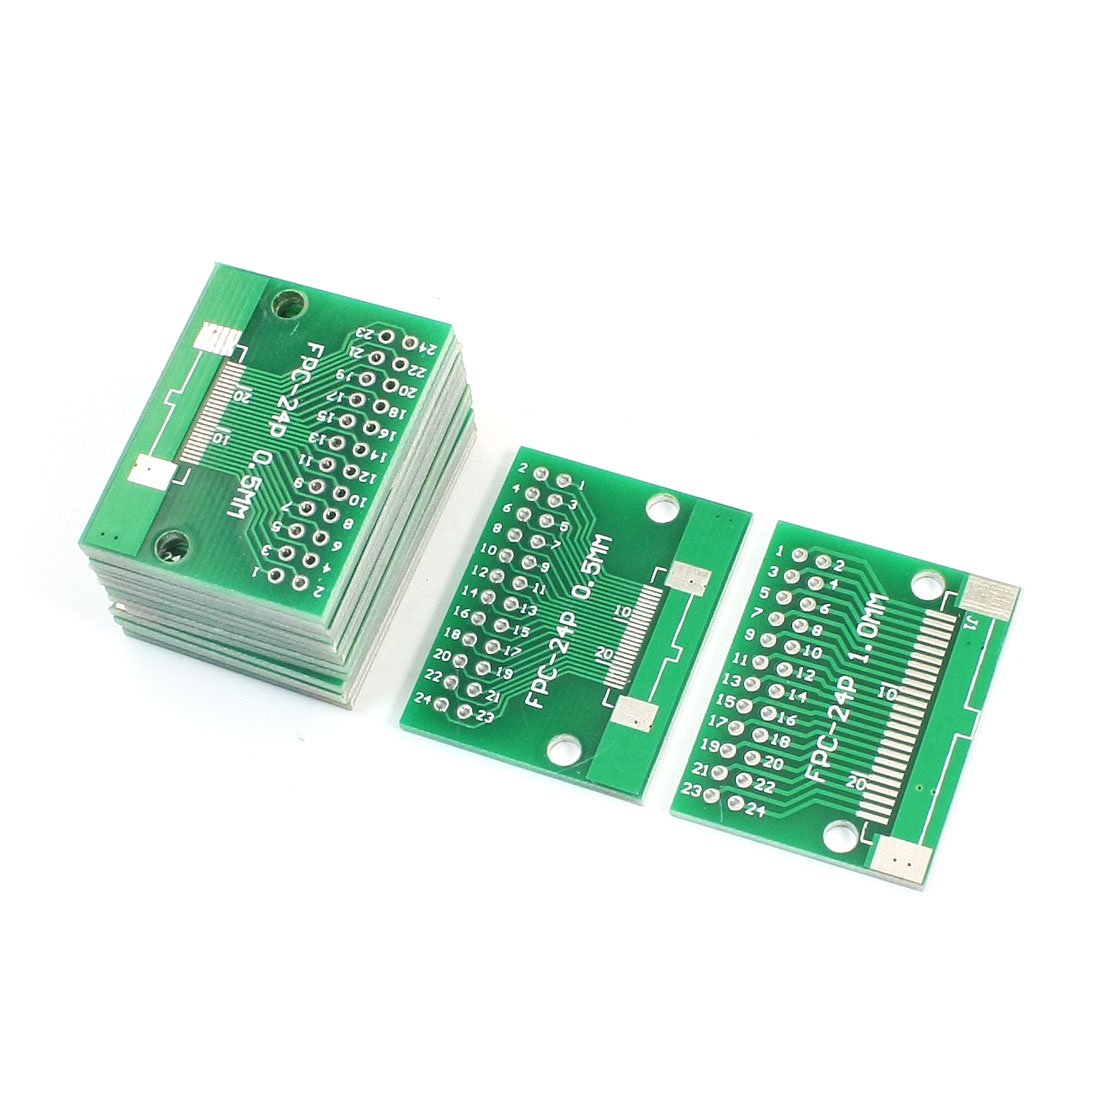 35mm x 28mm FPC-24P SOP24 1mm 0.5mm to DIP24 2.54mm Pitch Interposer PCB Board Adapter Plate Converter